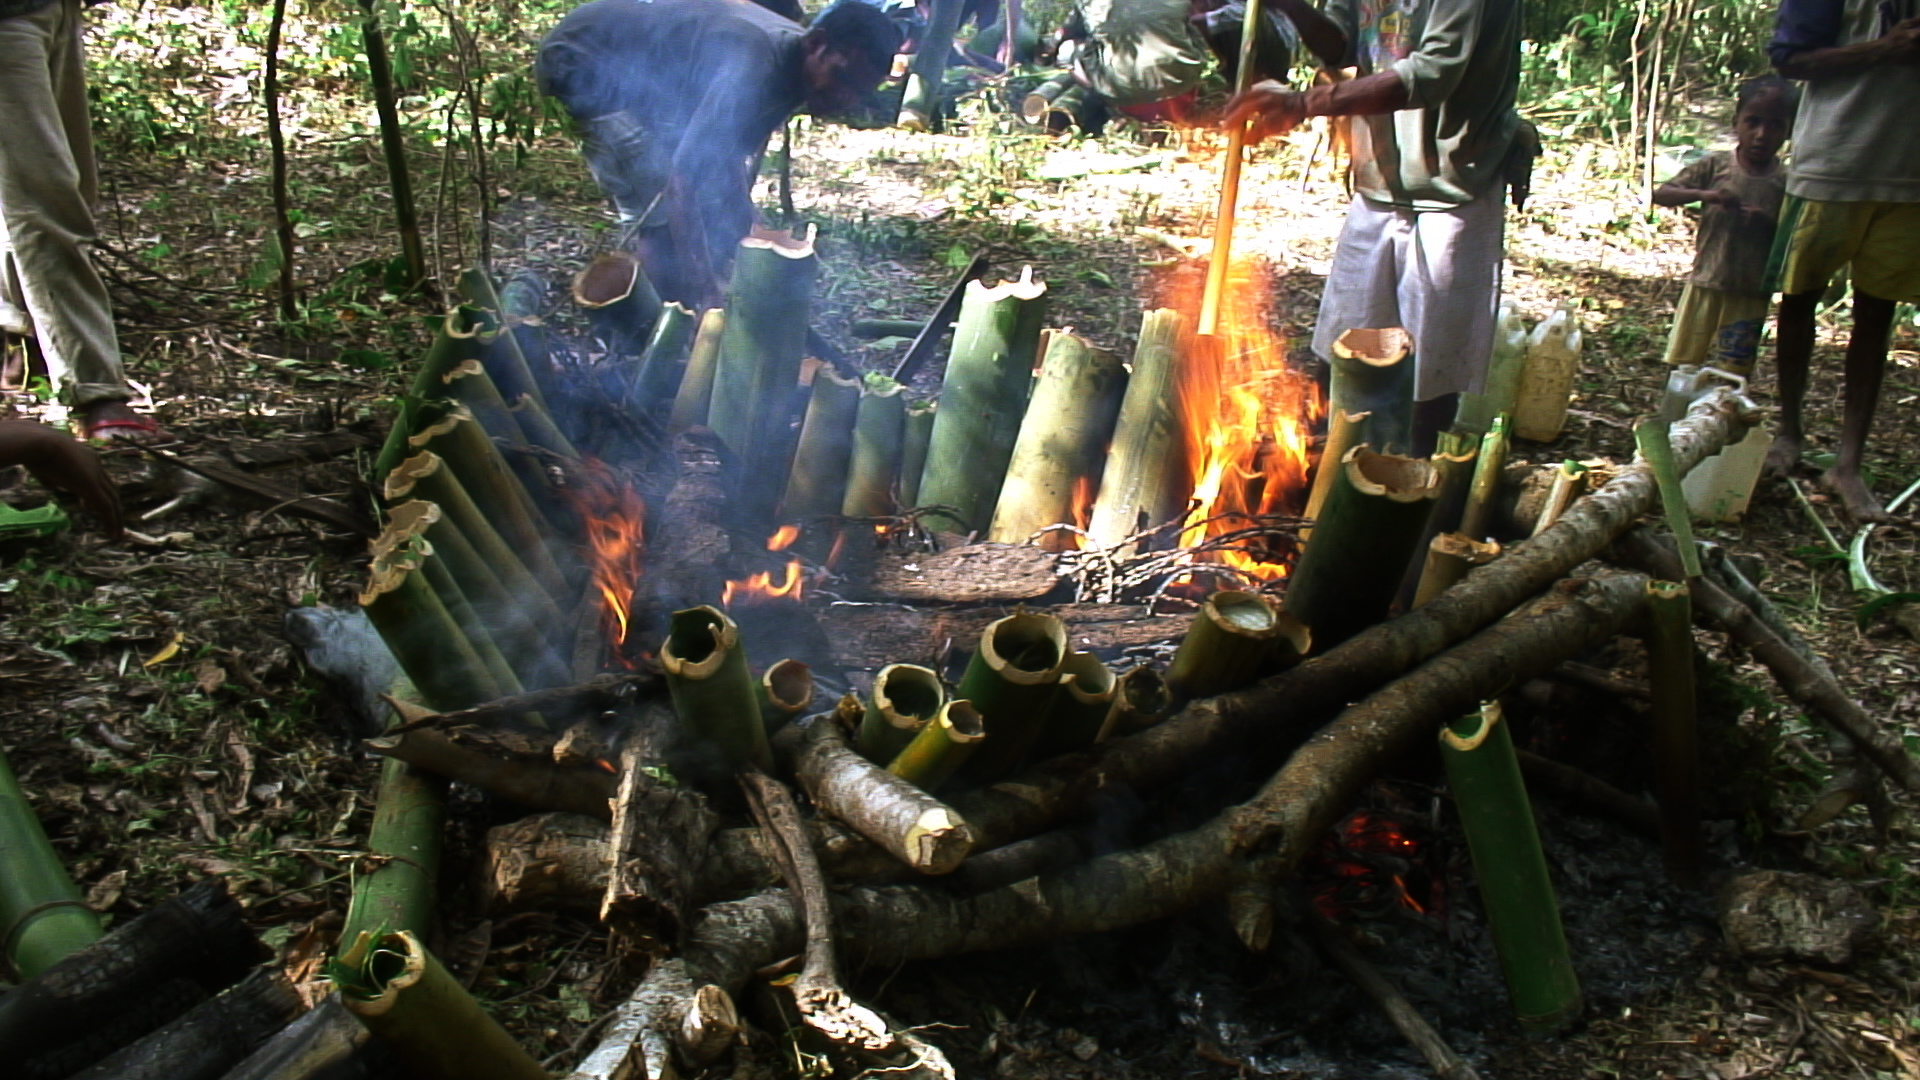 Tukir, cooking in bamboo in East Timor